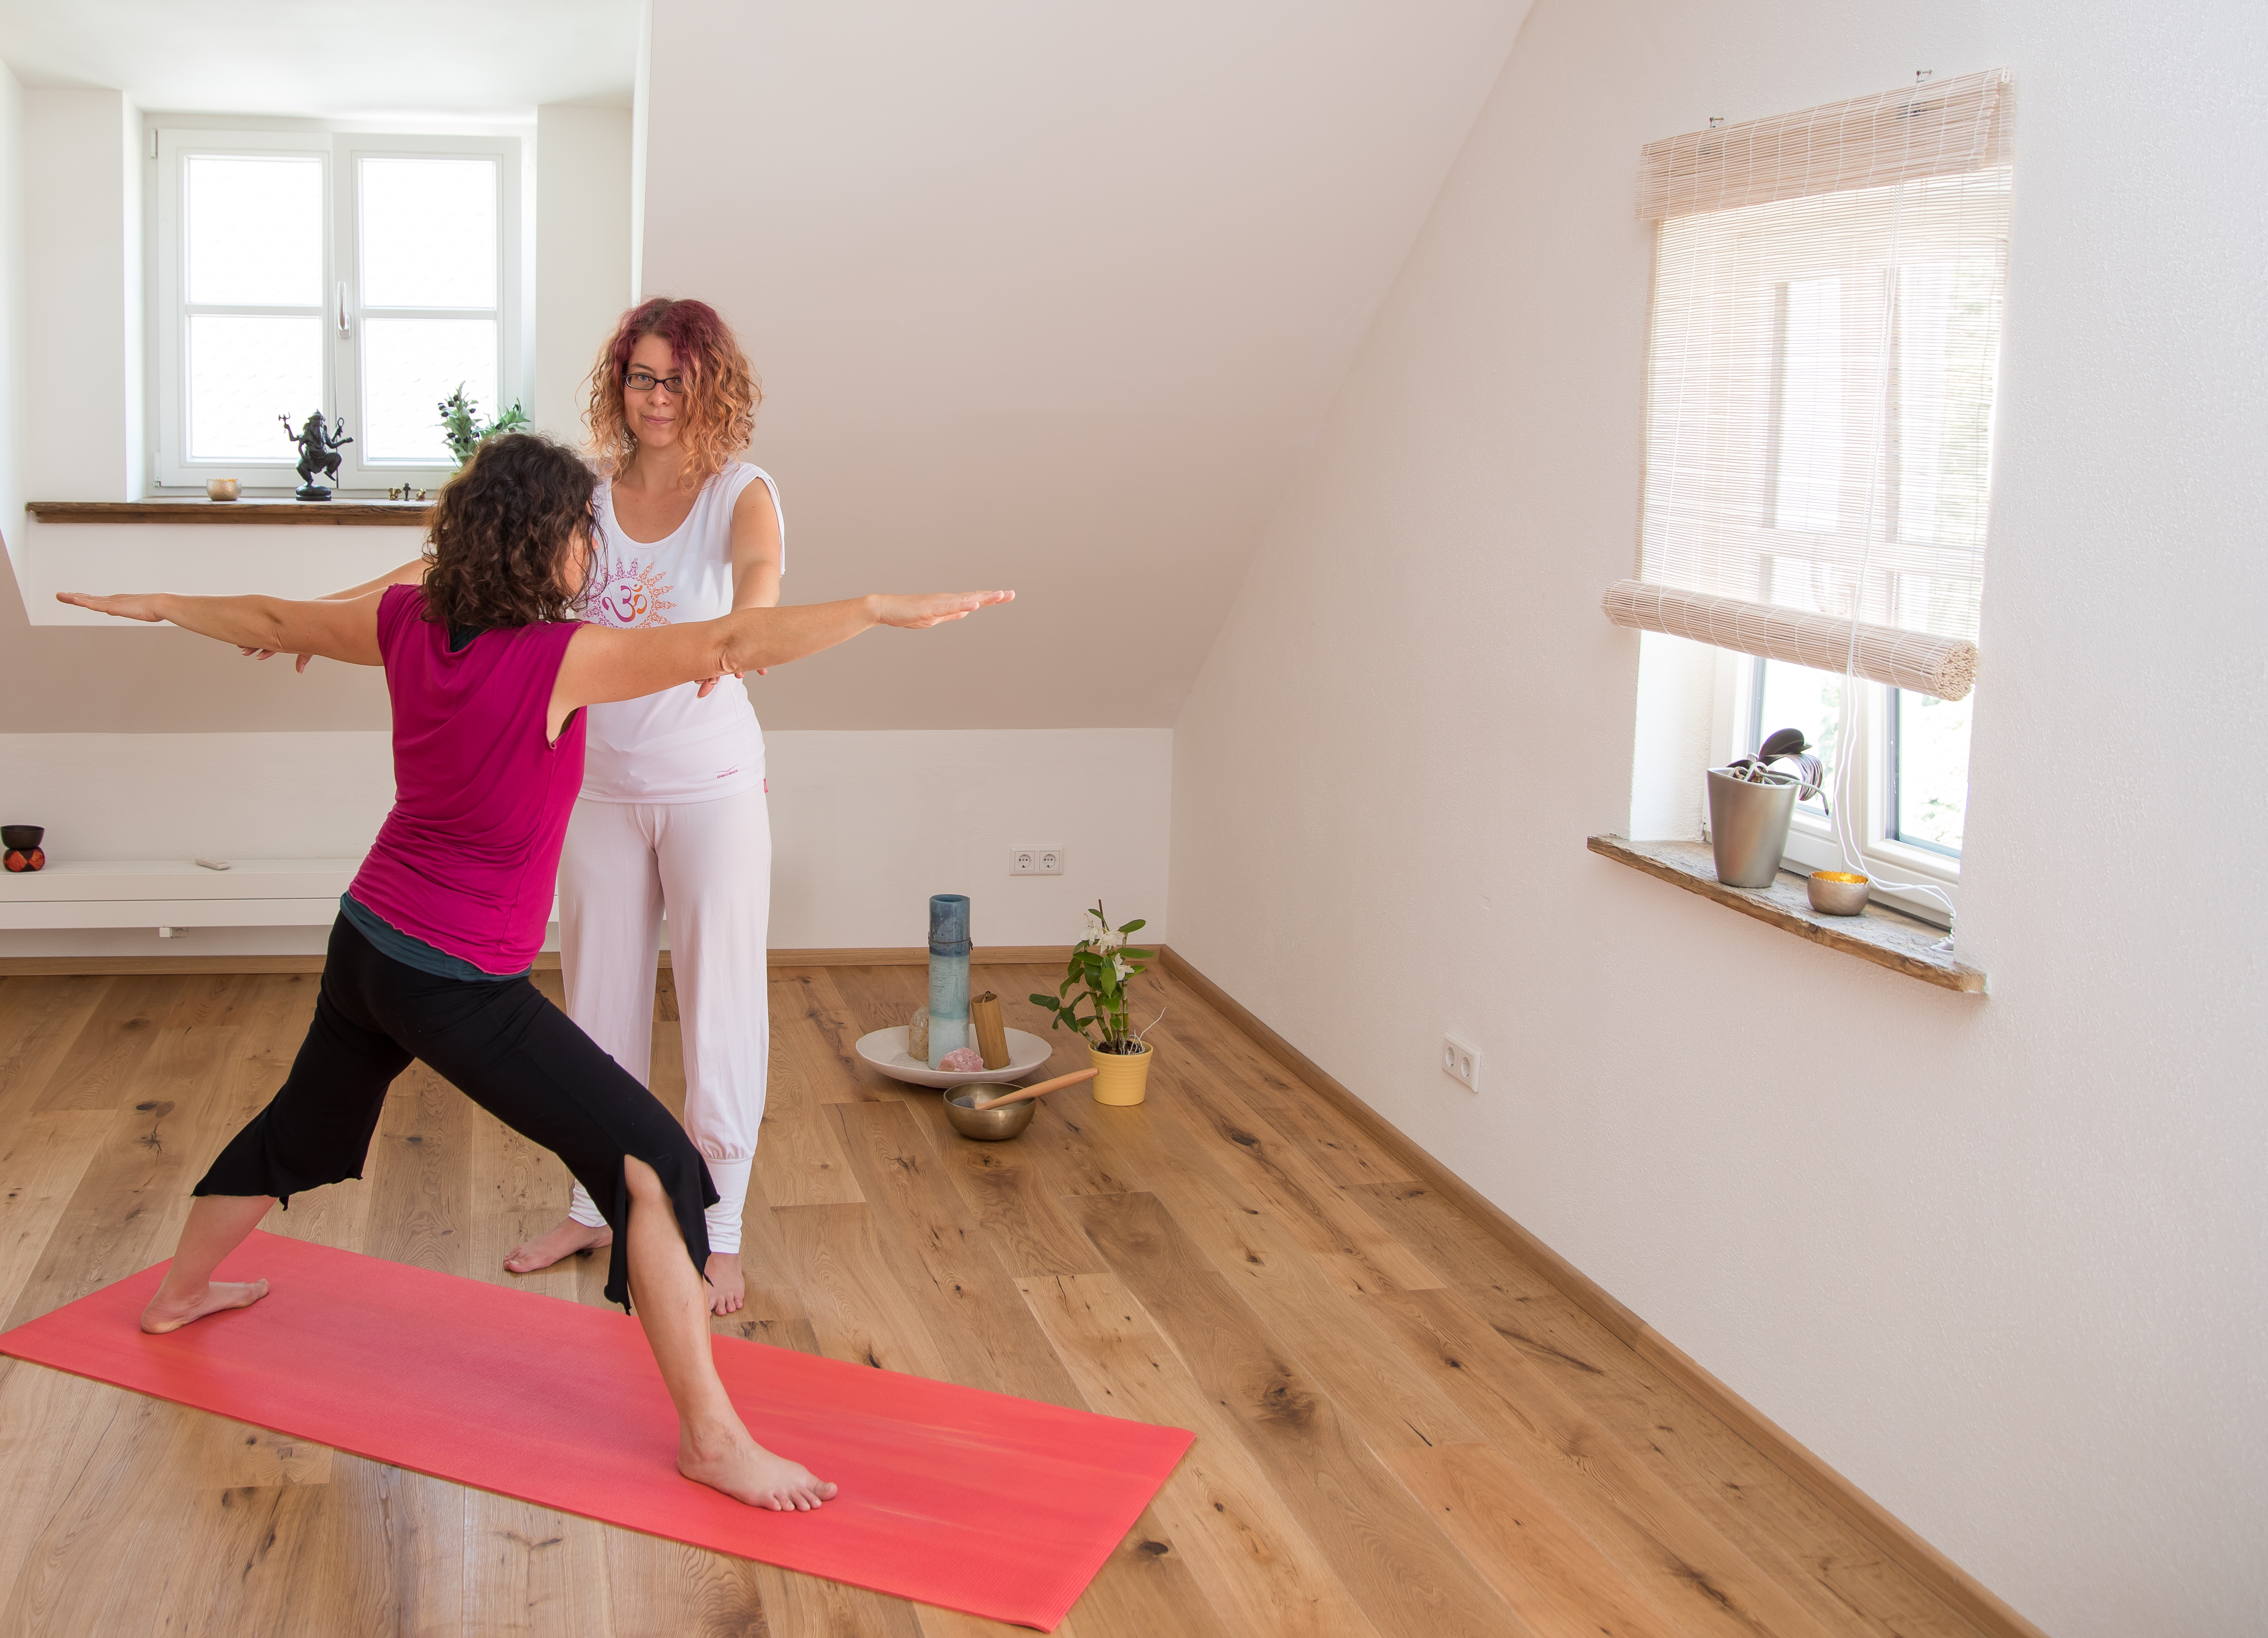 Yoga Individuell - In der Gruppe ab 19.09. 19 Uhr